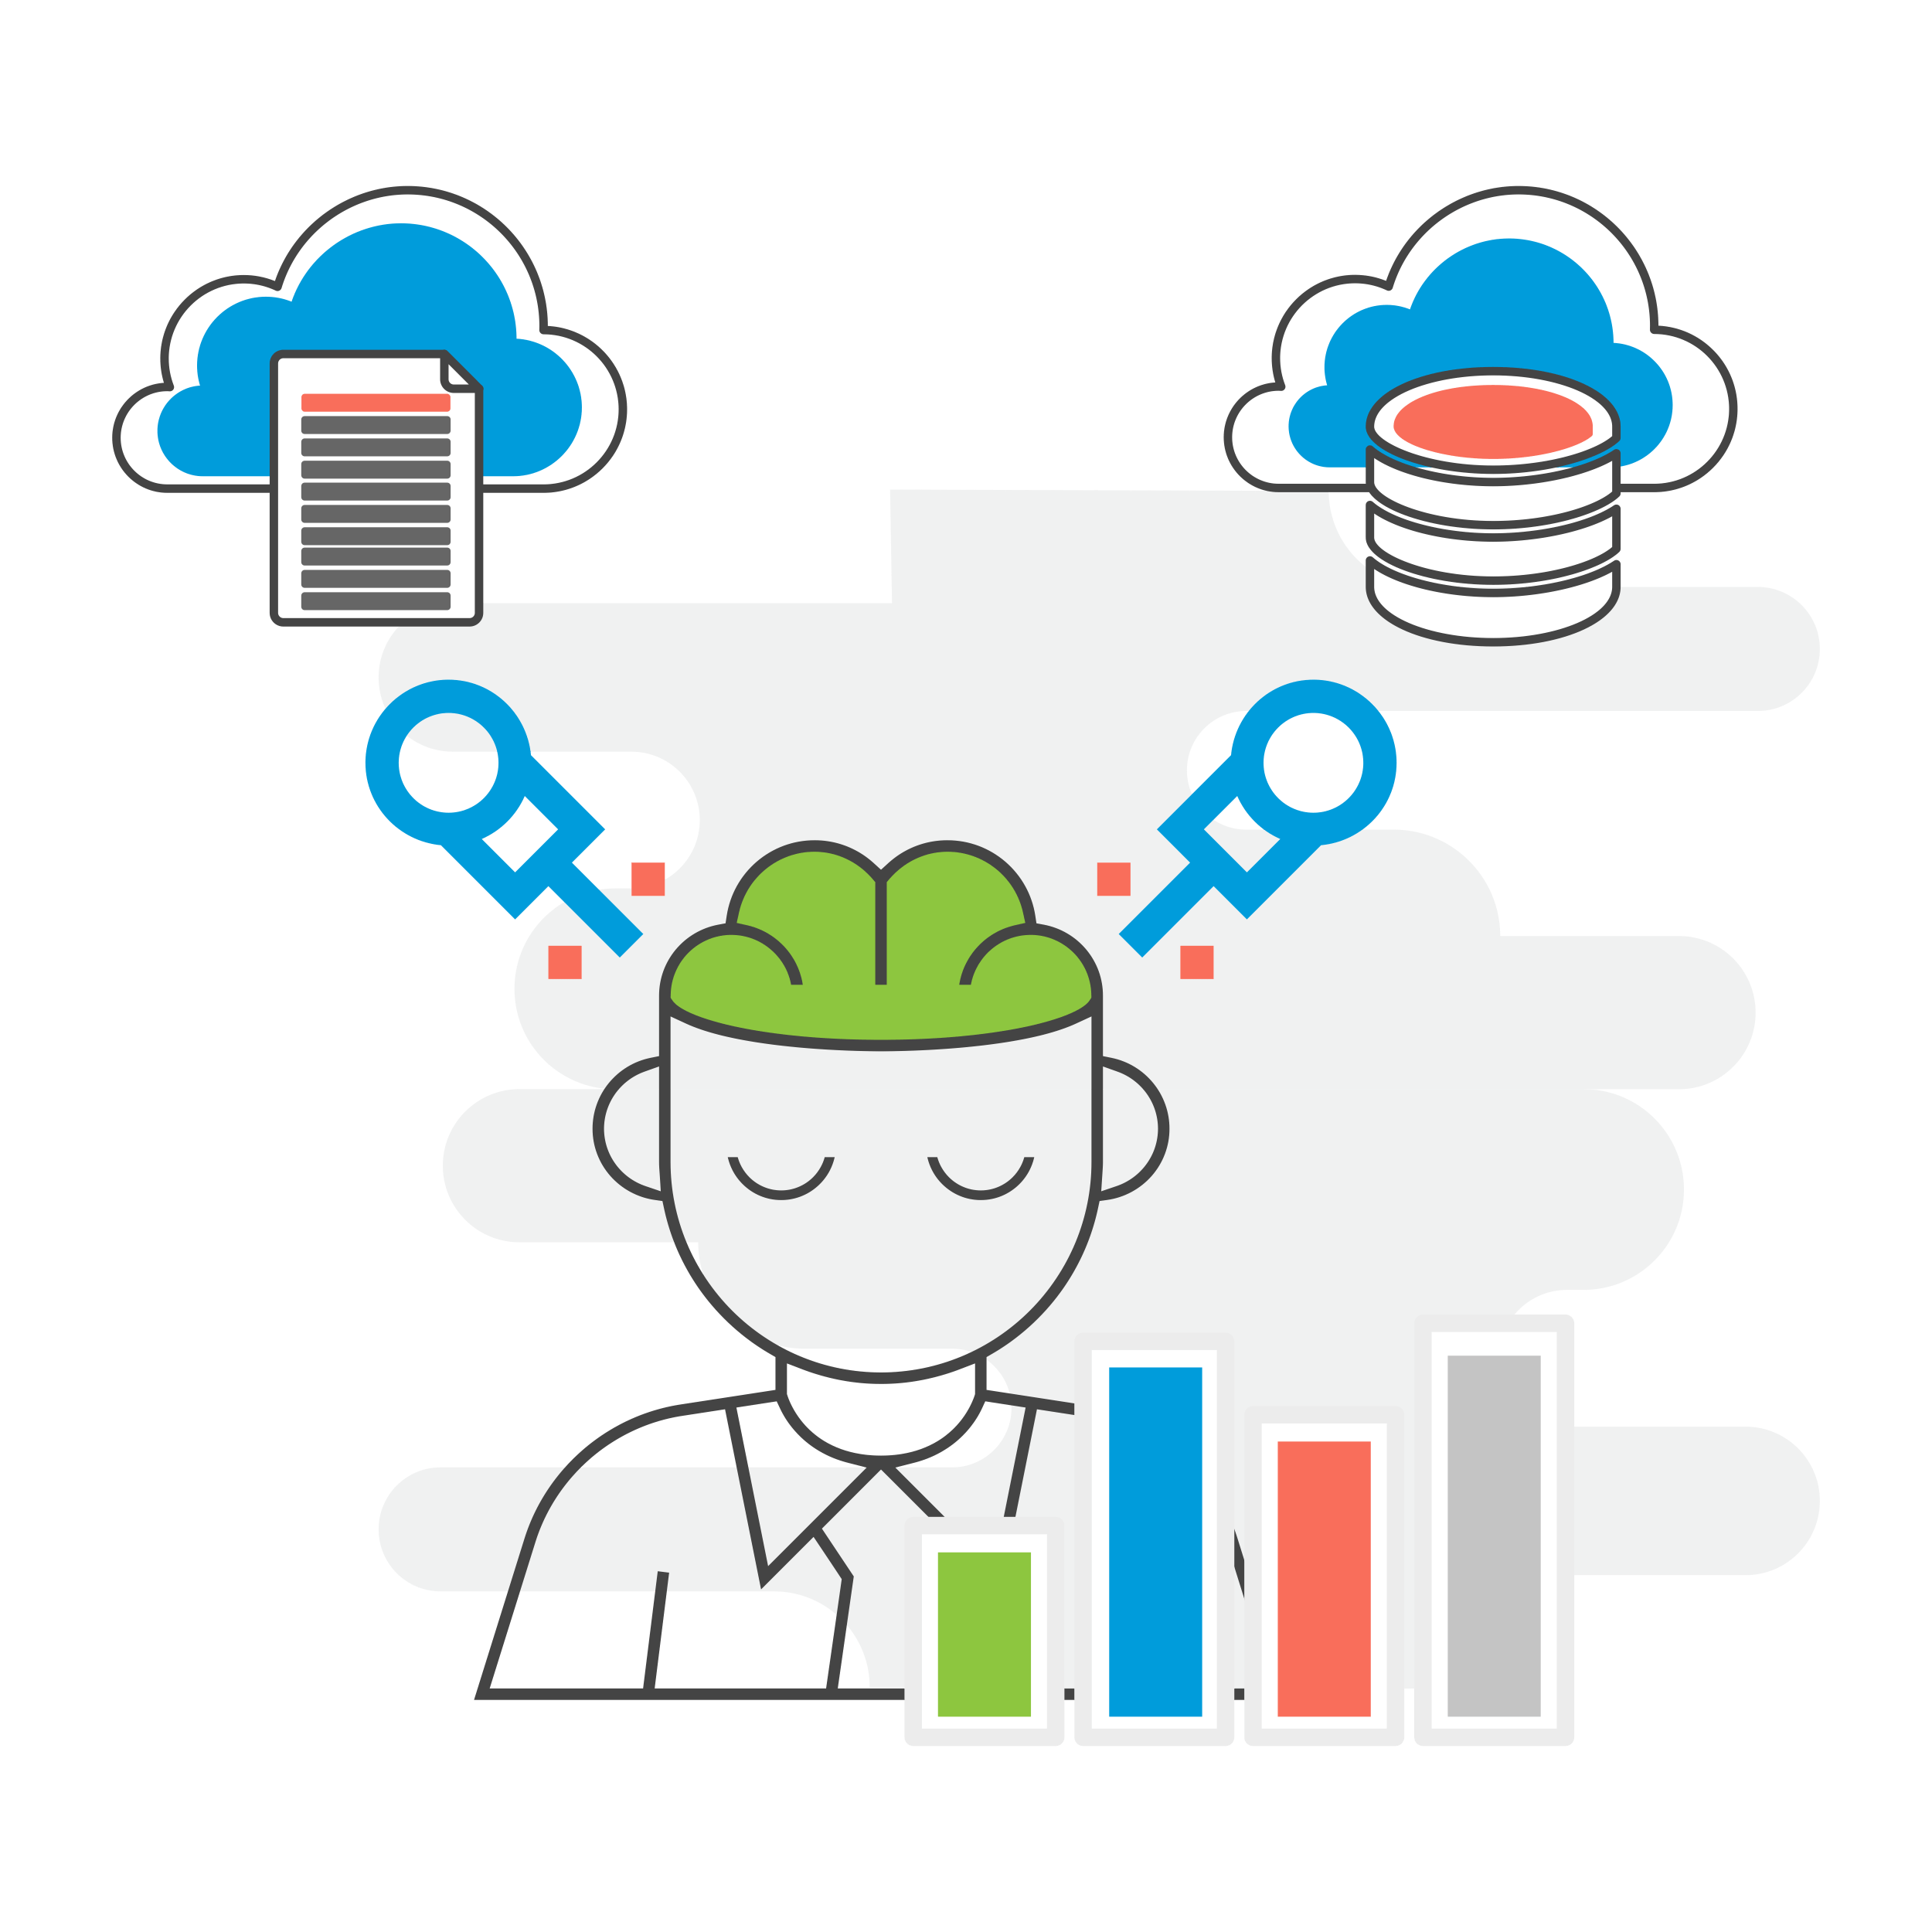 clipart free download Software Clipart data scientist